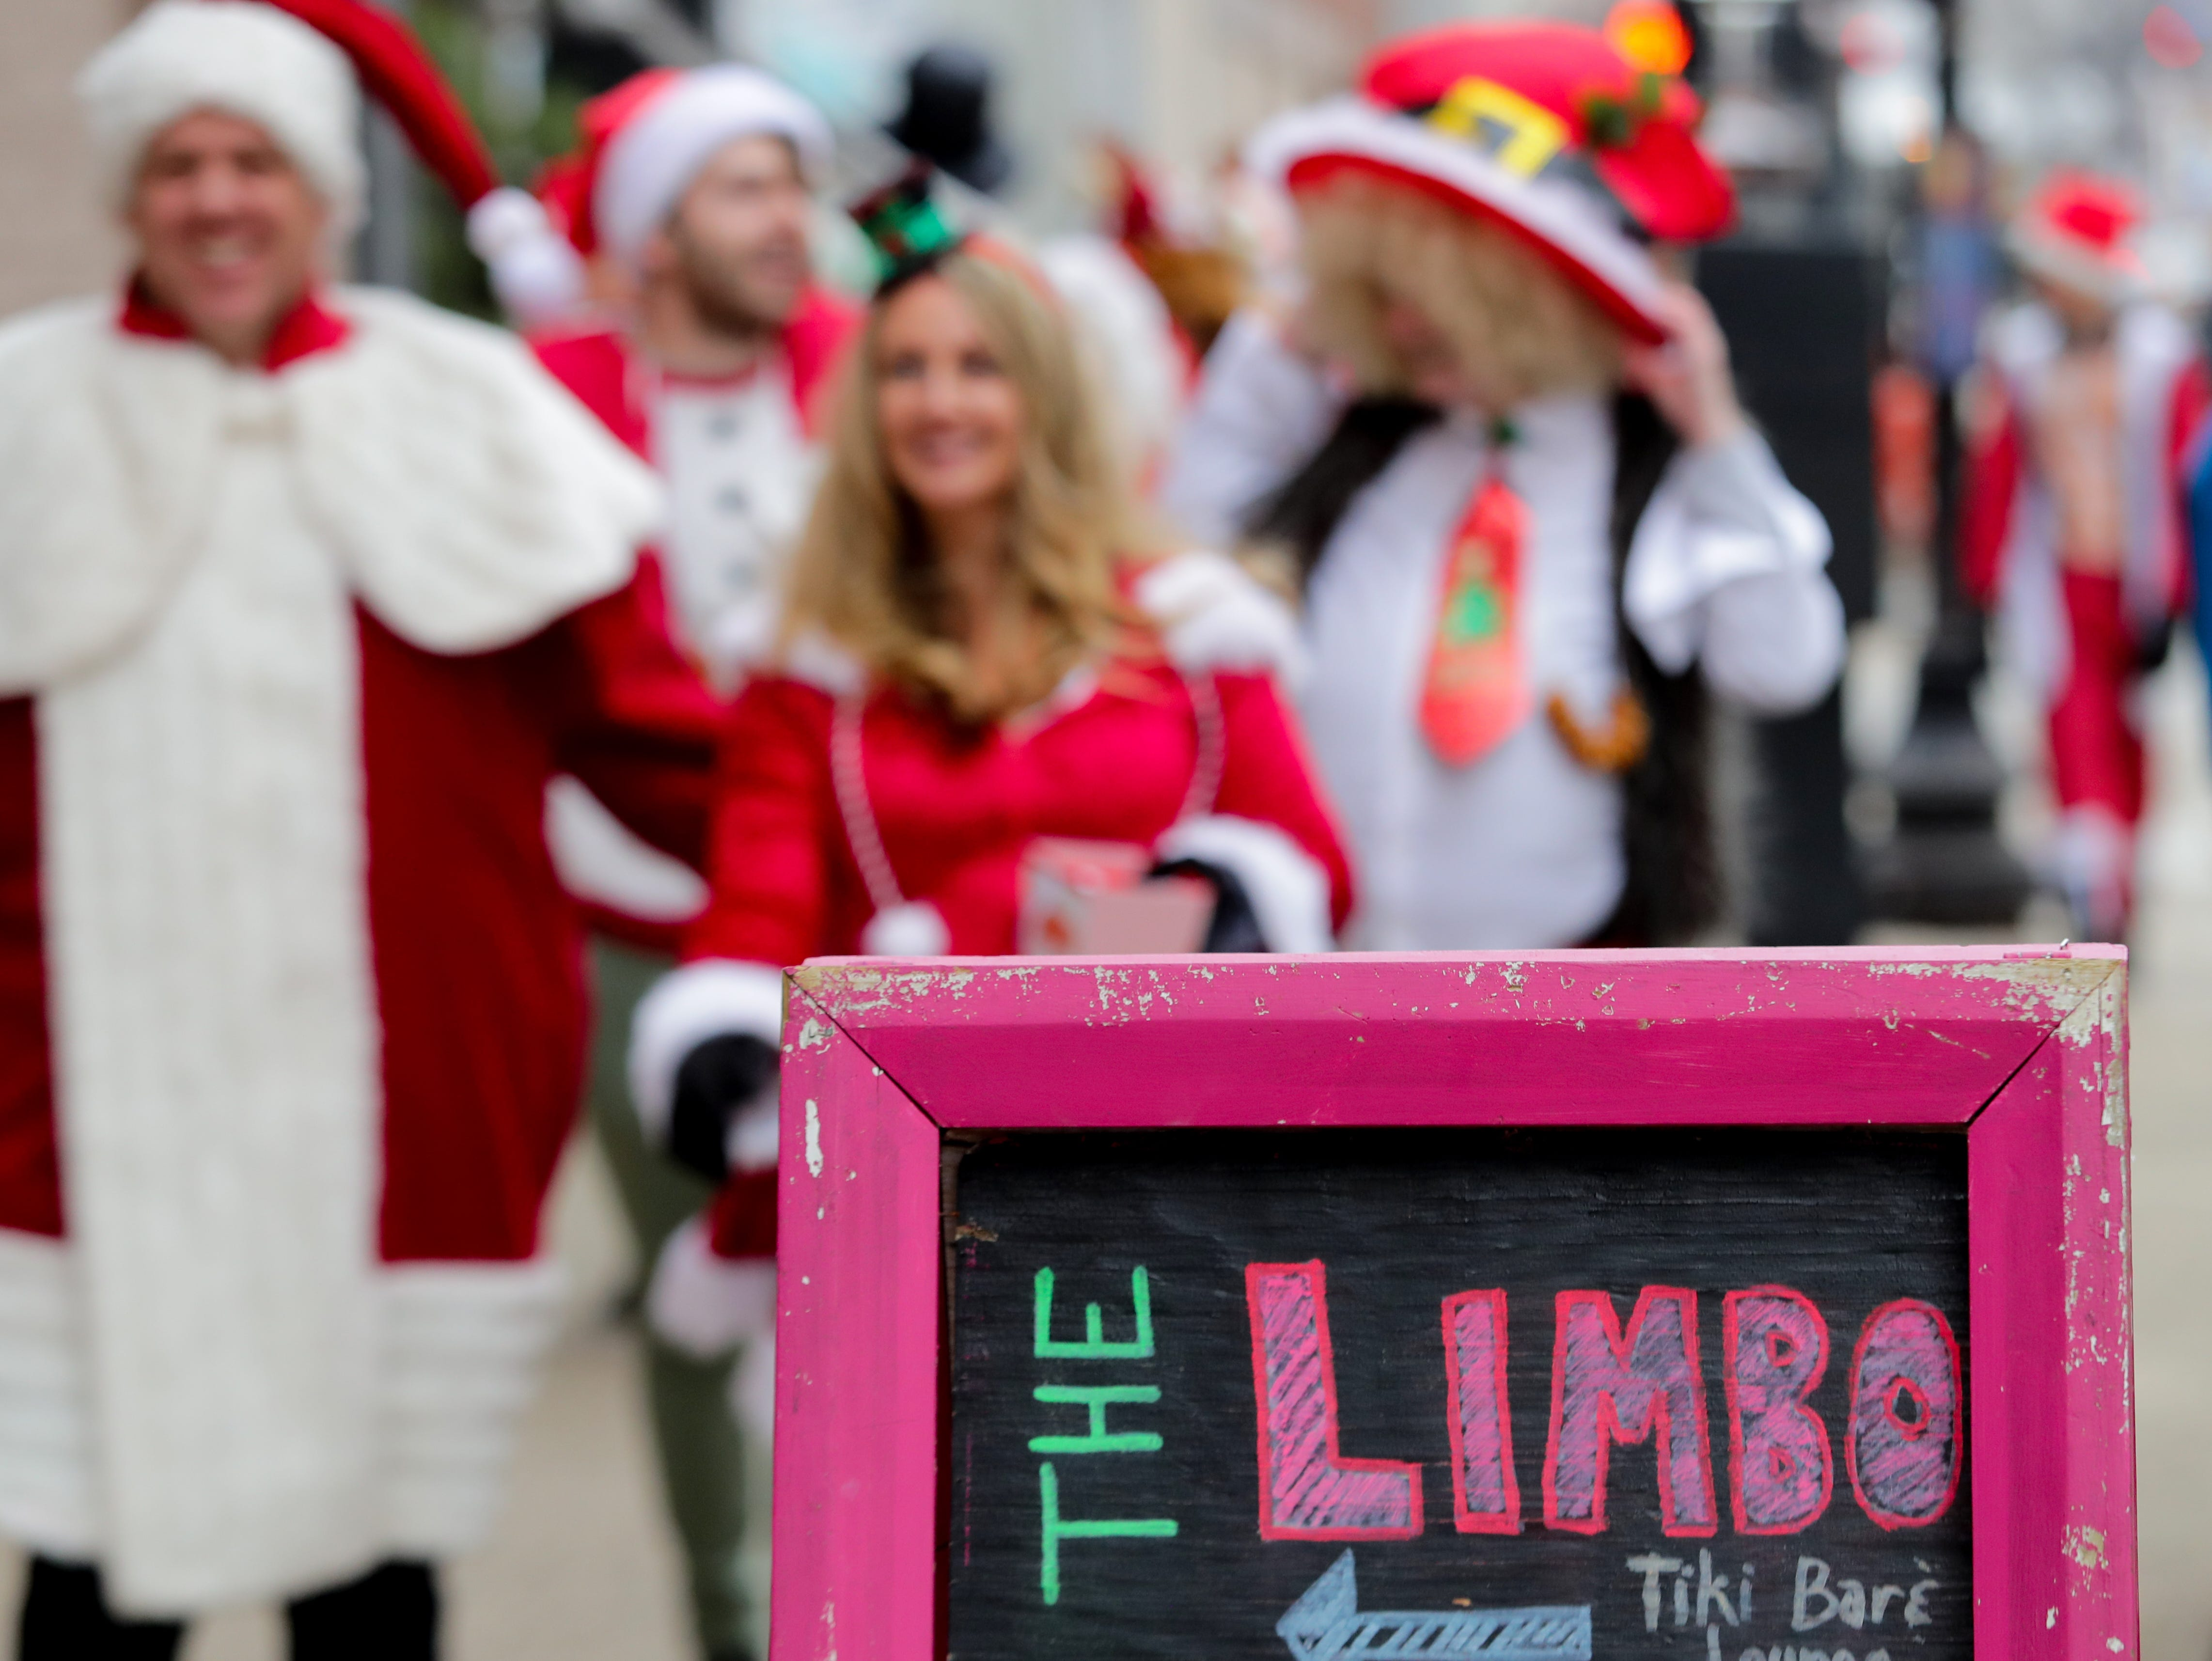 The crowd enjoys The Limbo, the second location on the Louisville SantaCon journey. Dec. 8, 2018